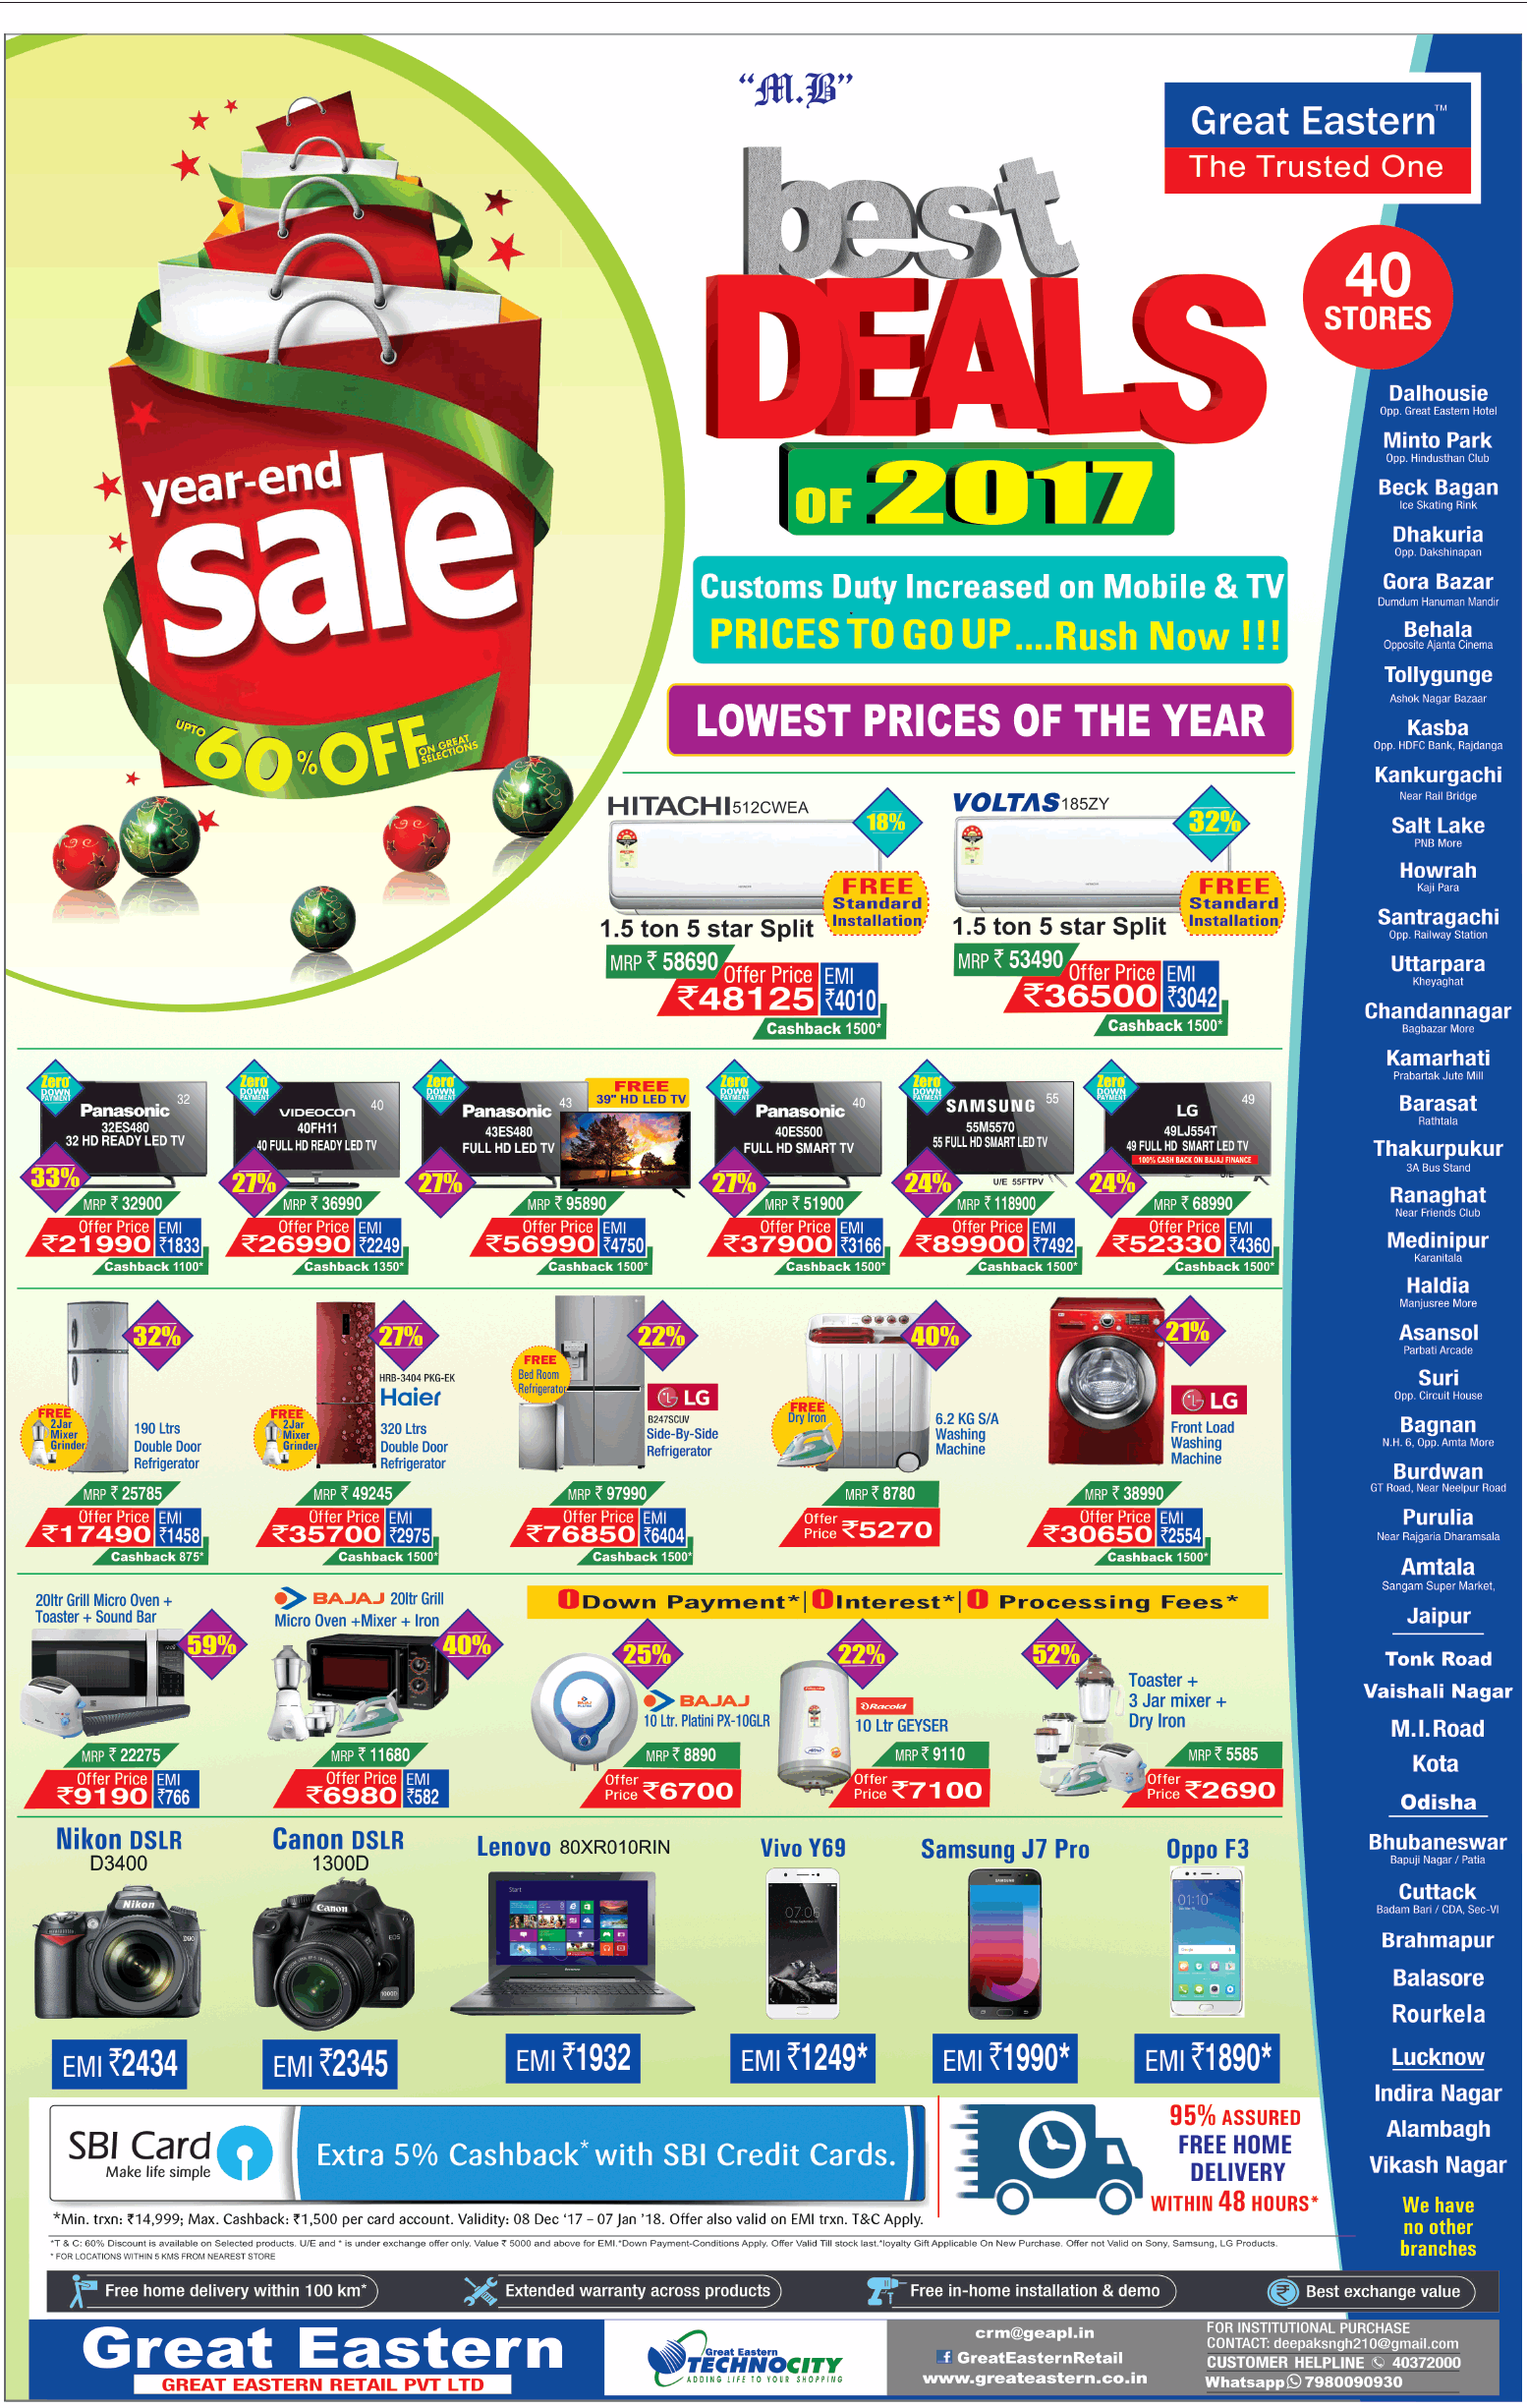 Great eastern year end sale 60 off ad advert gallery for Furniture year end sale 2017